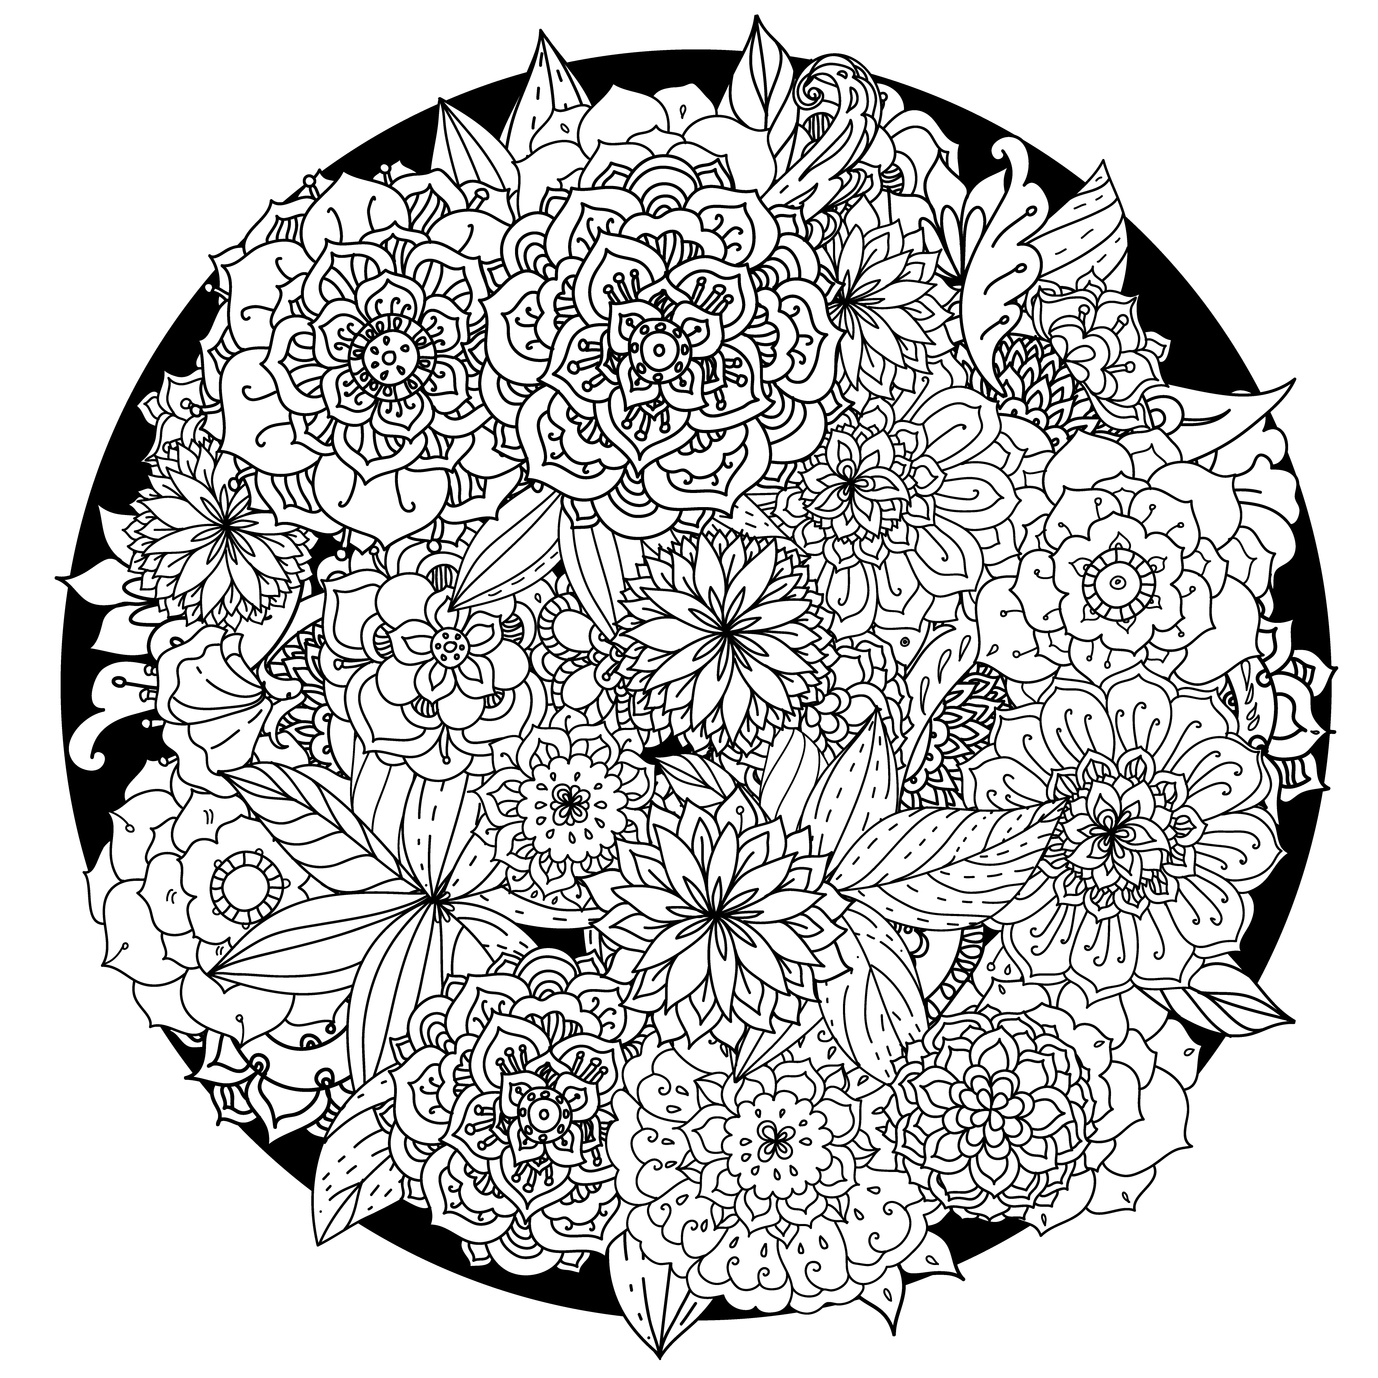 coloring pages for adults hd black and white coloring pages for adults transparent hd for adults pages coloring